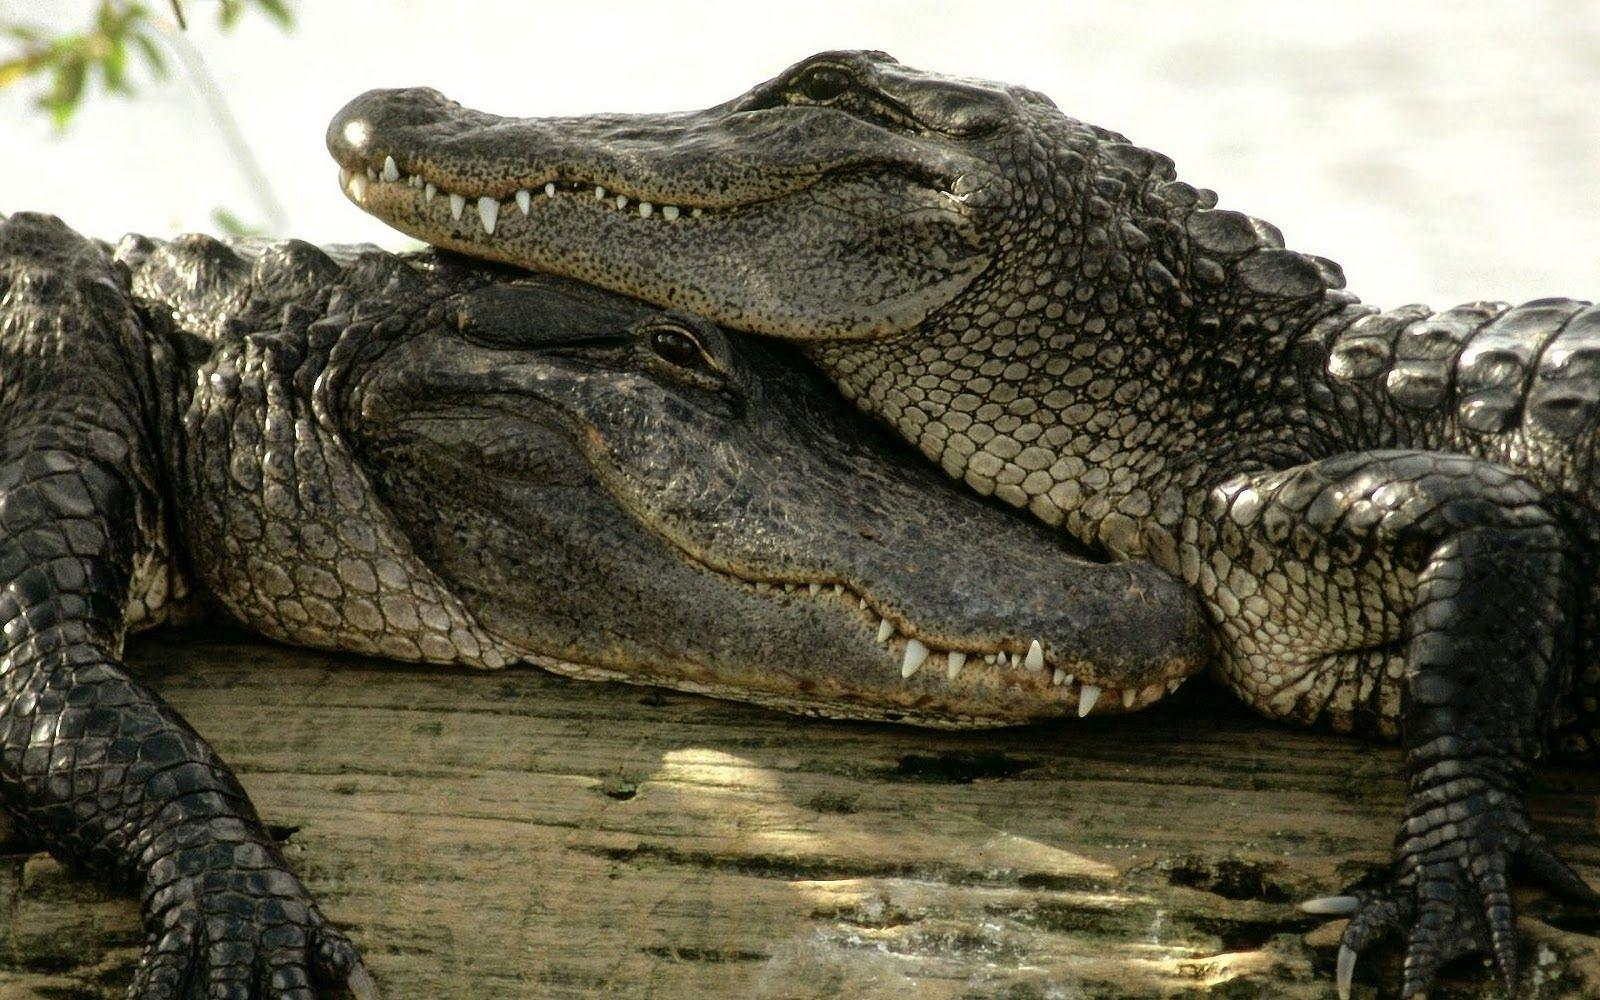 giant croc pictures hd free